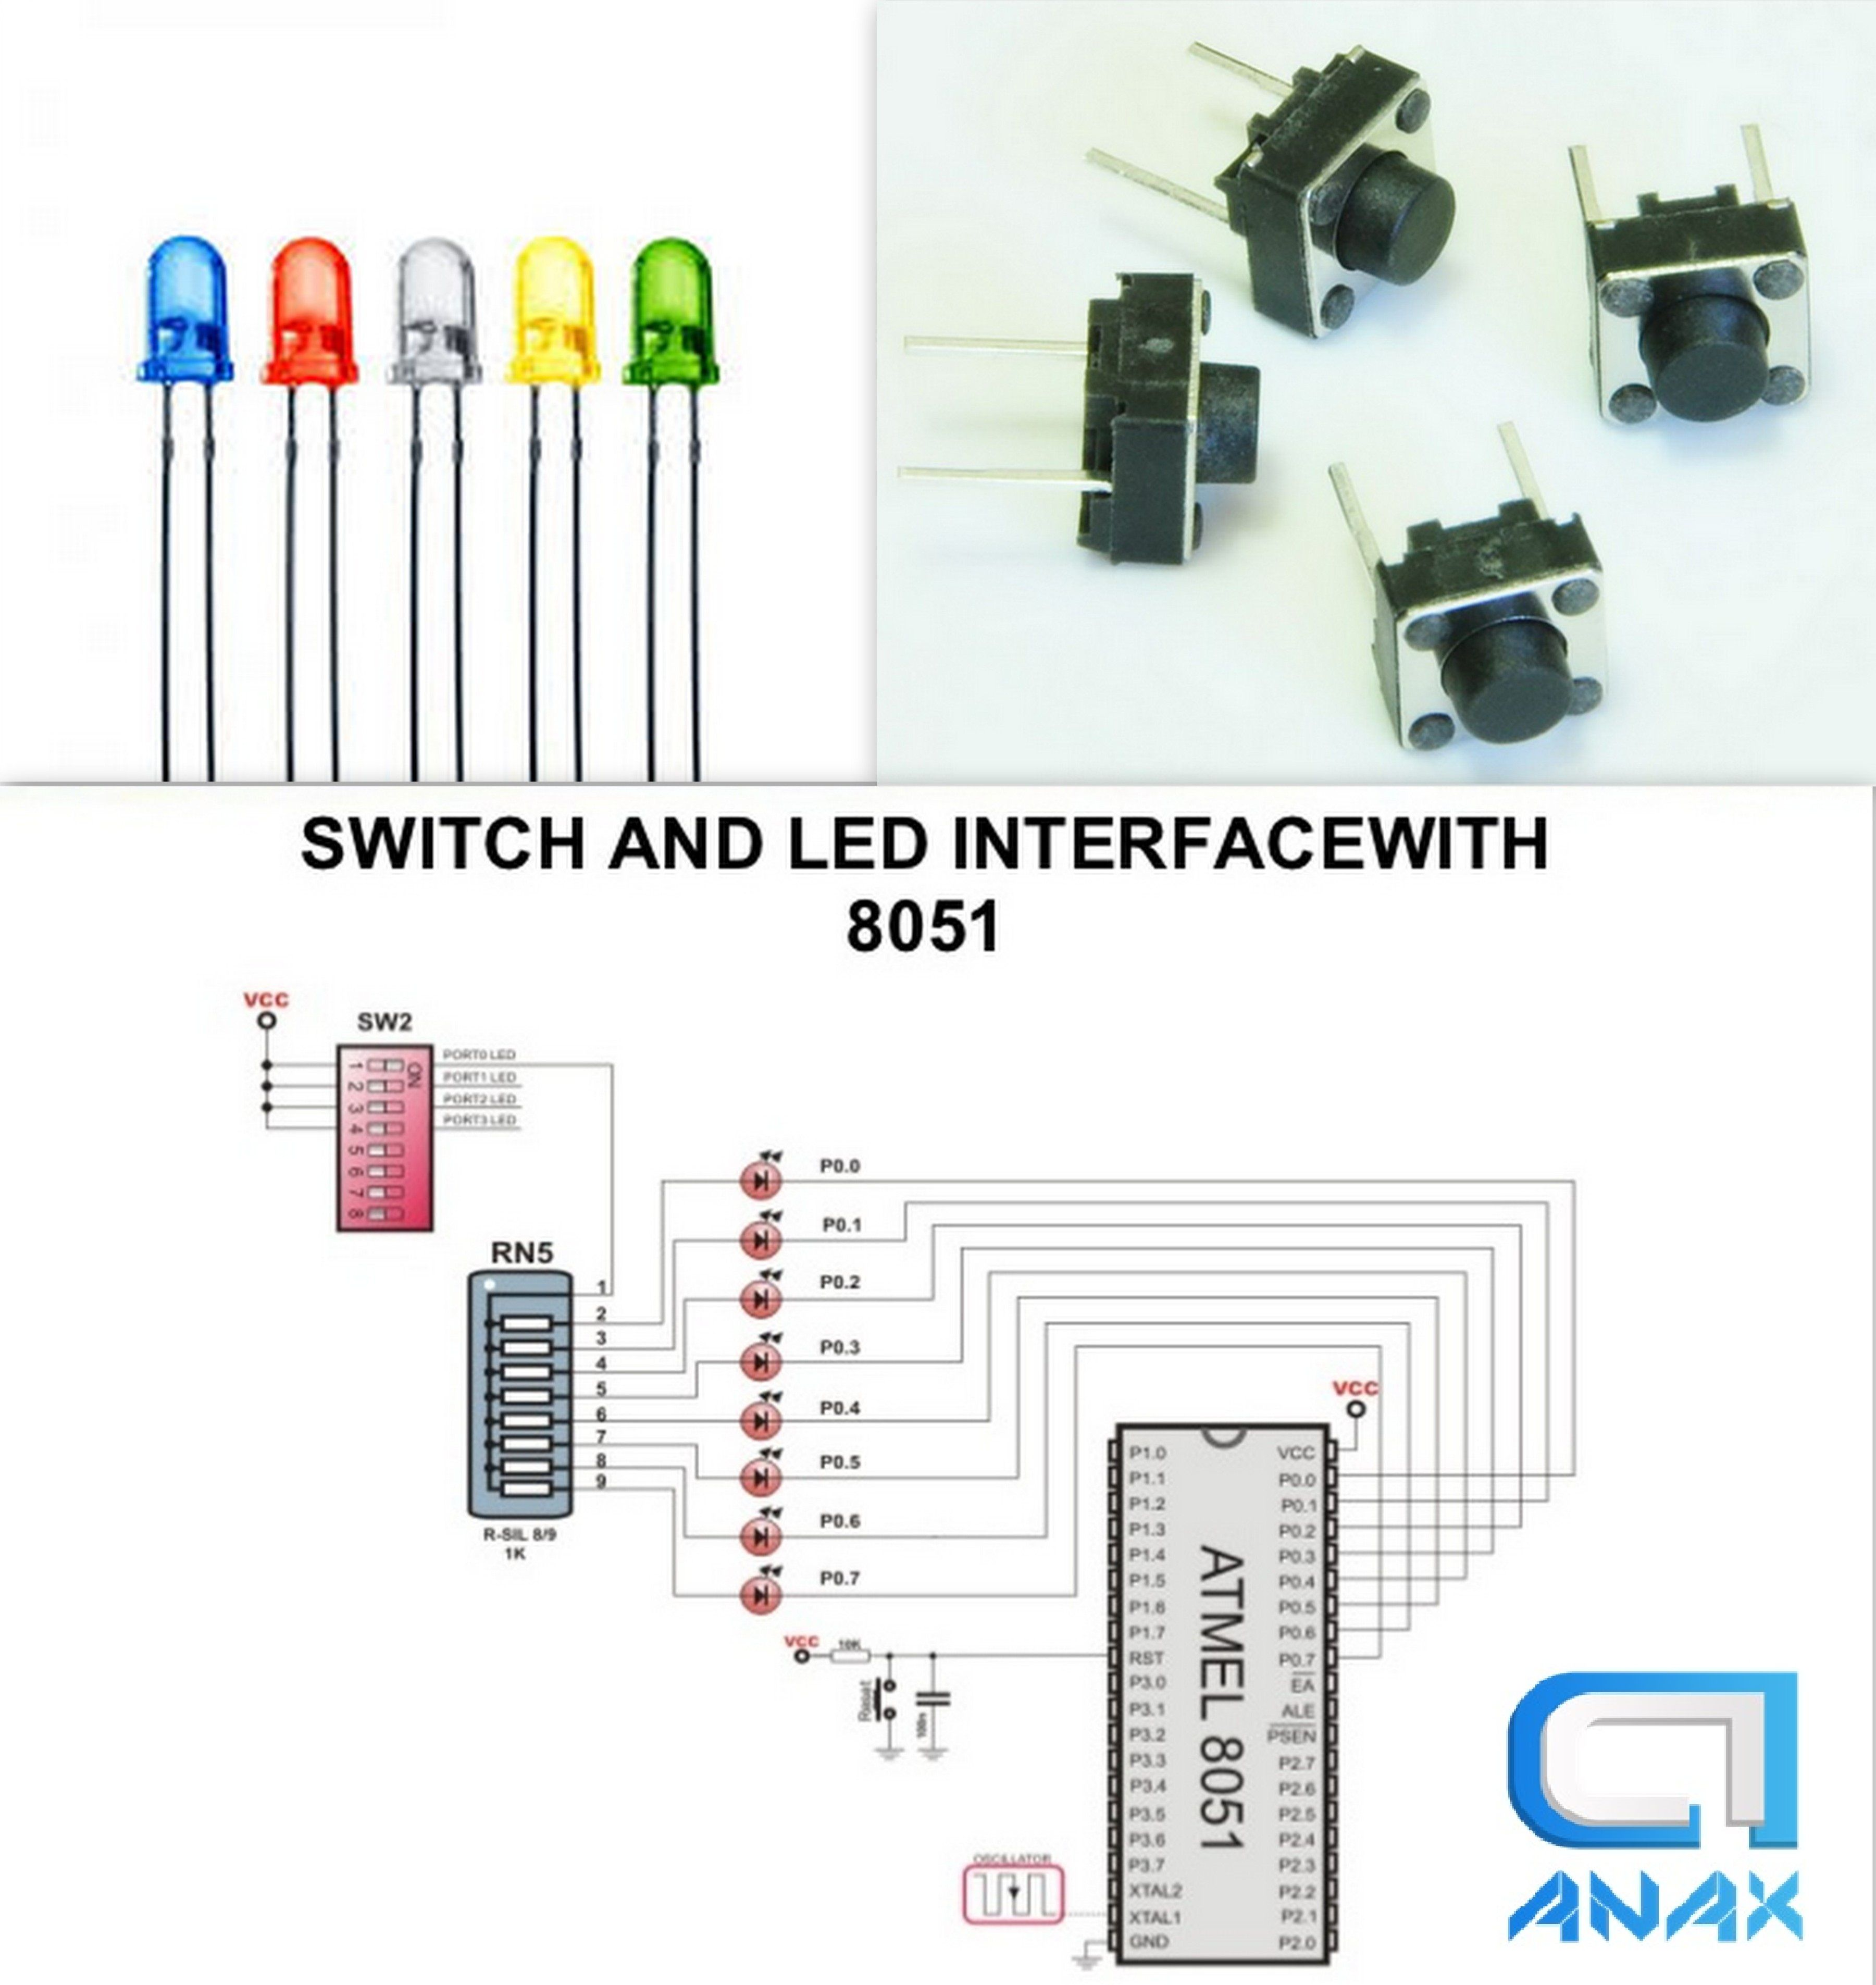 Switch And Led Interface With Microcontroller 8051 Automation Circuit Diagram Shows The Required